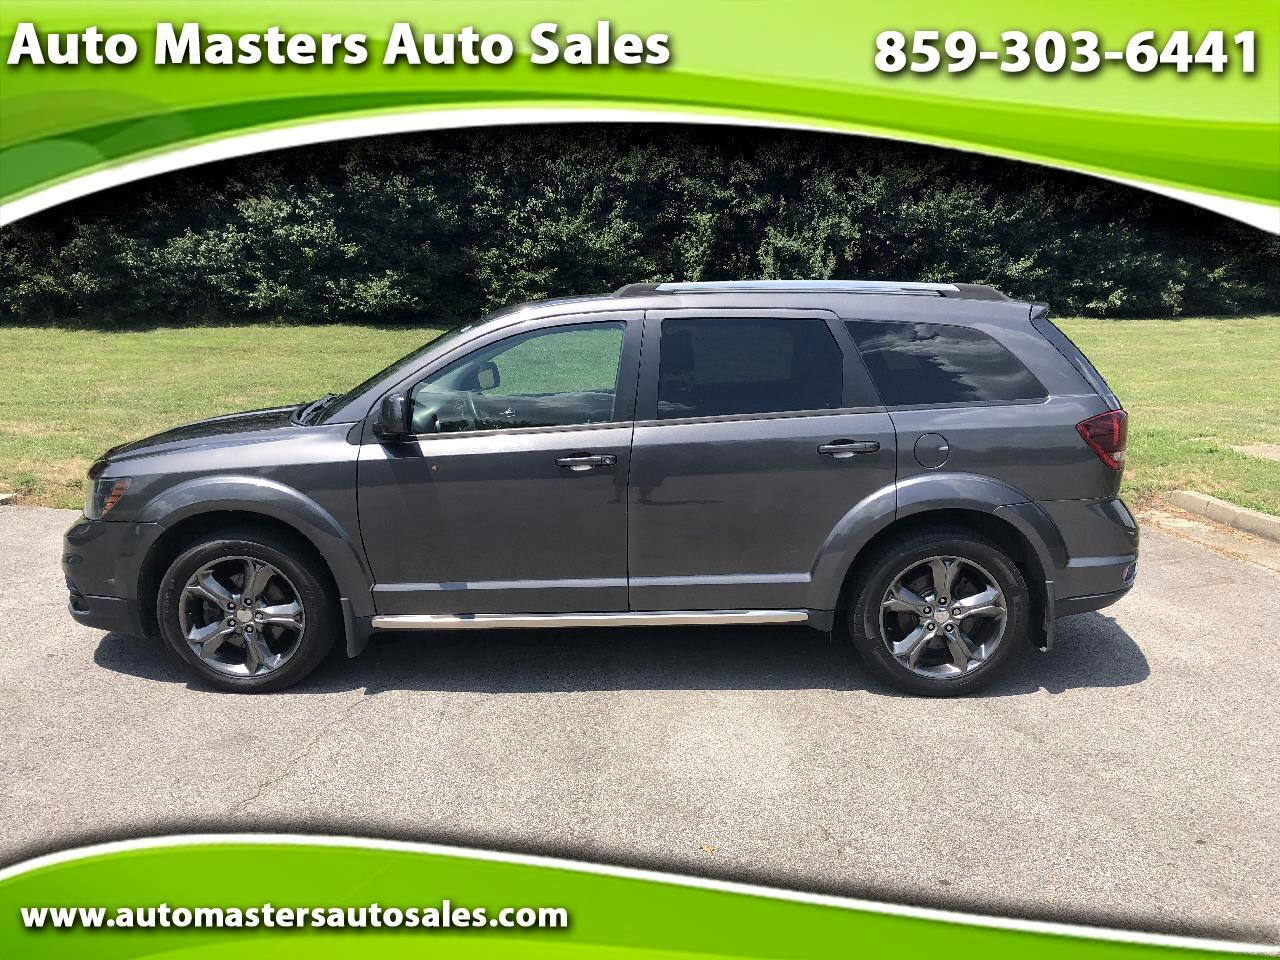 2014 Dodge Journey Crossroad FWD